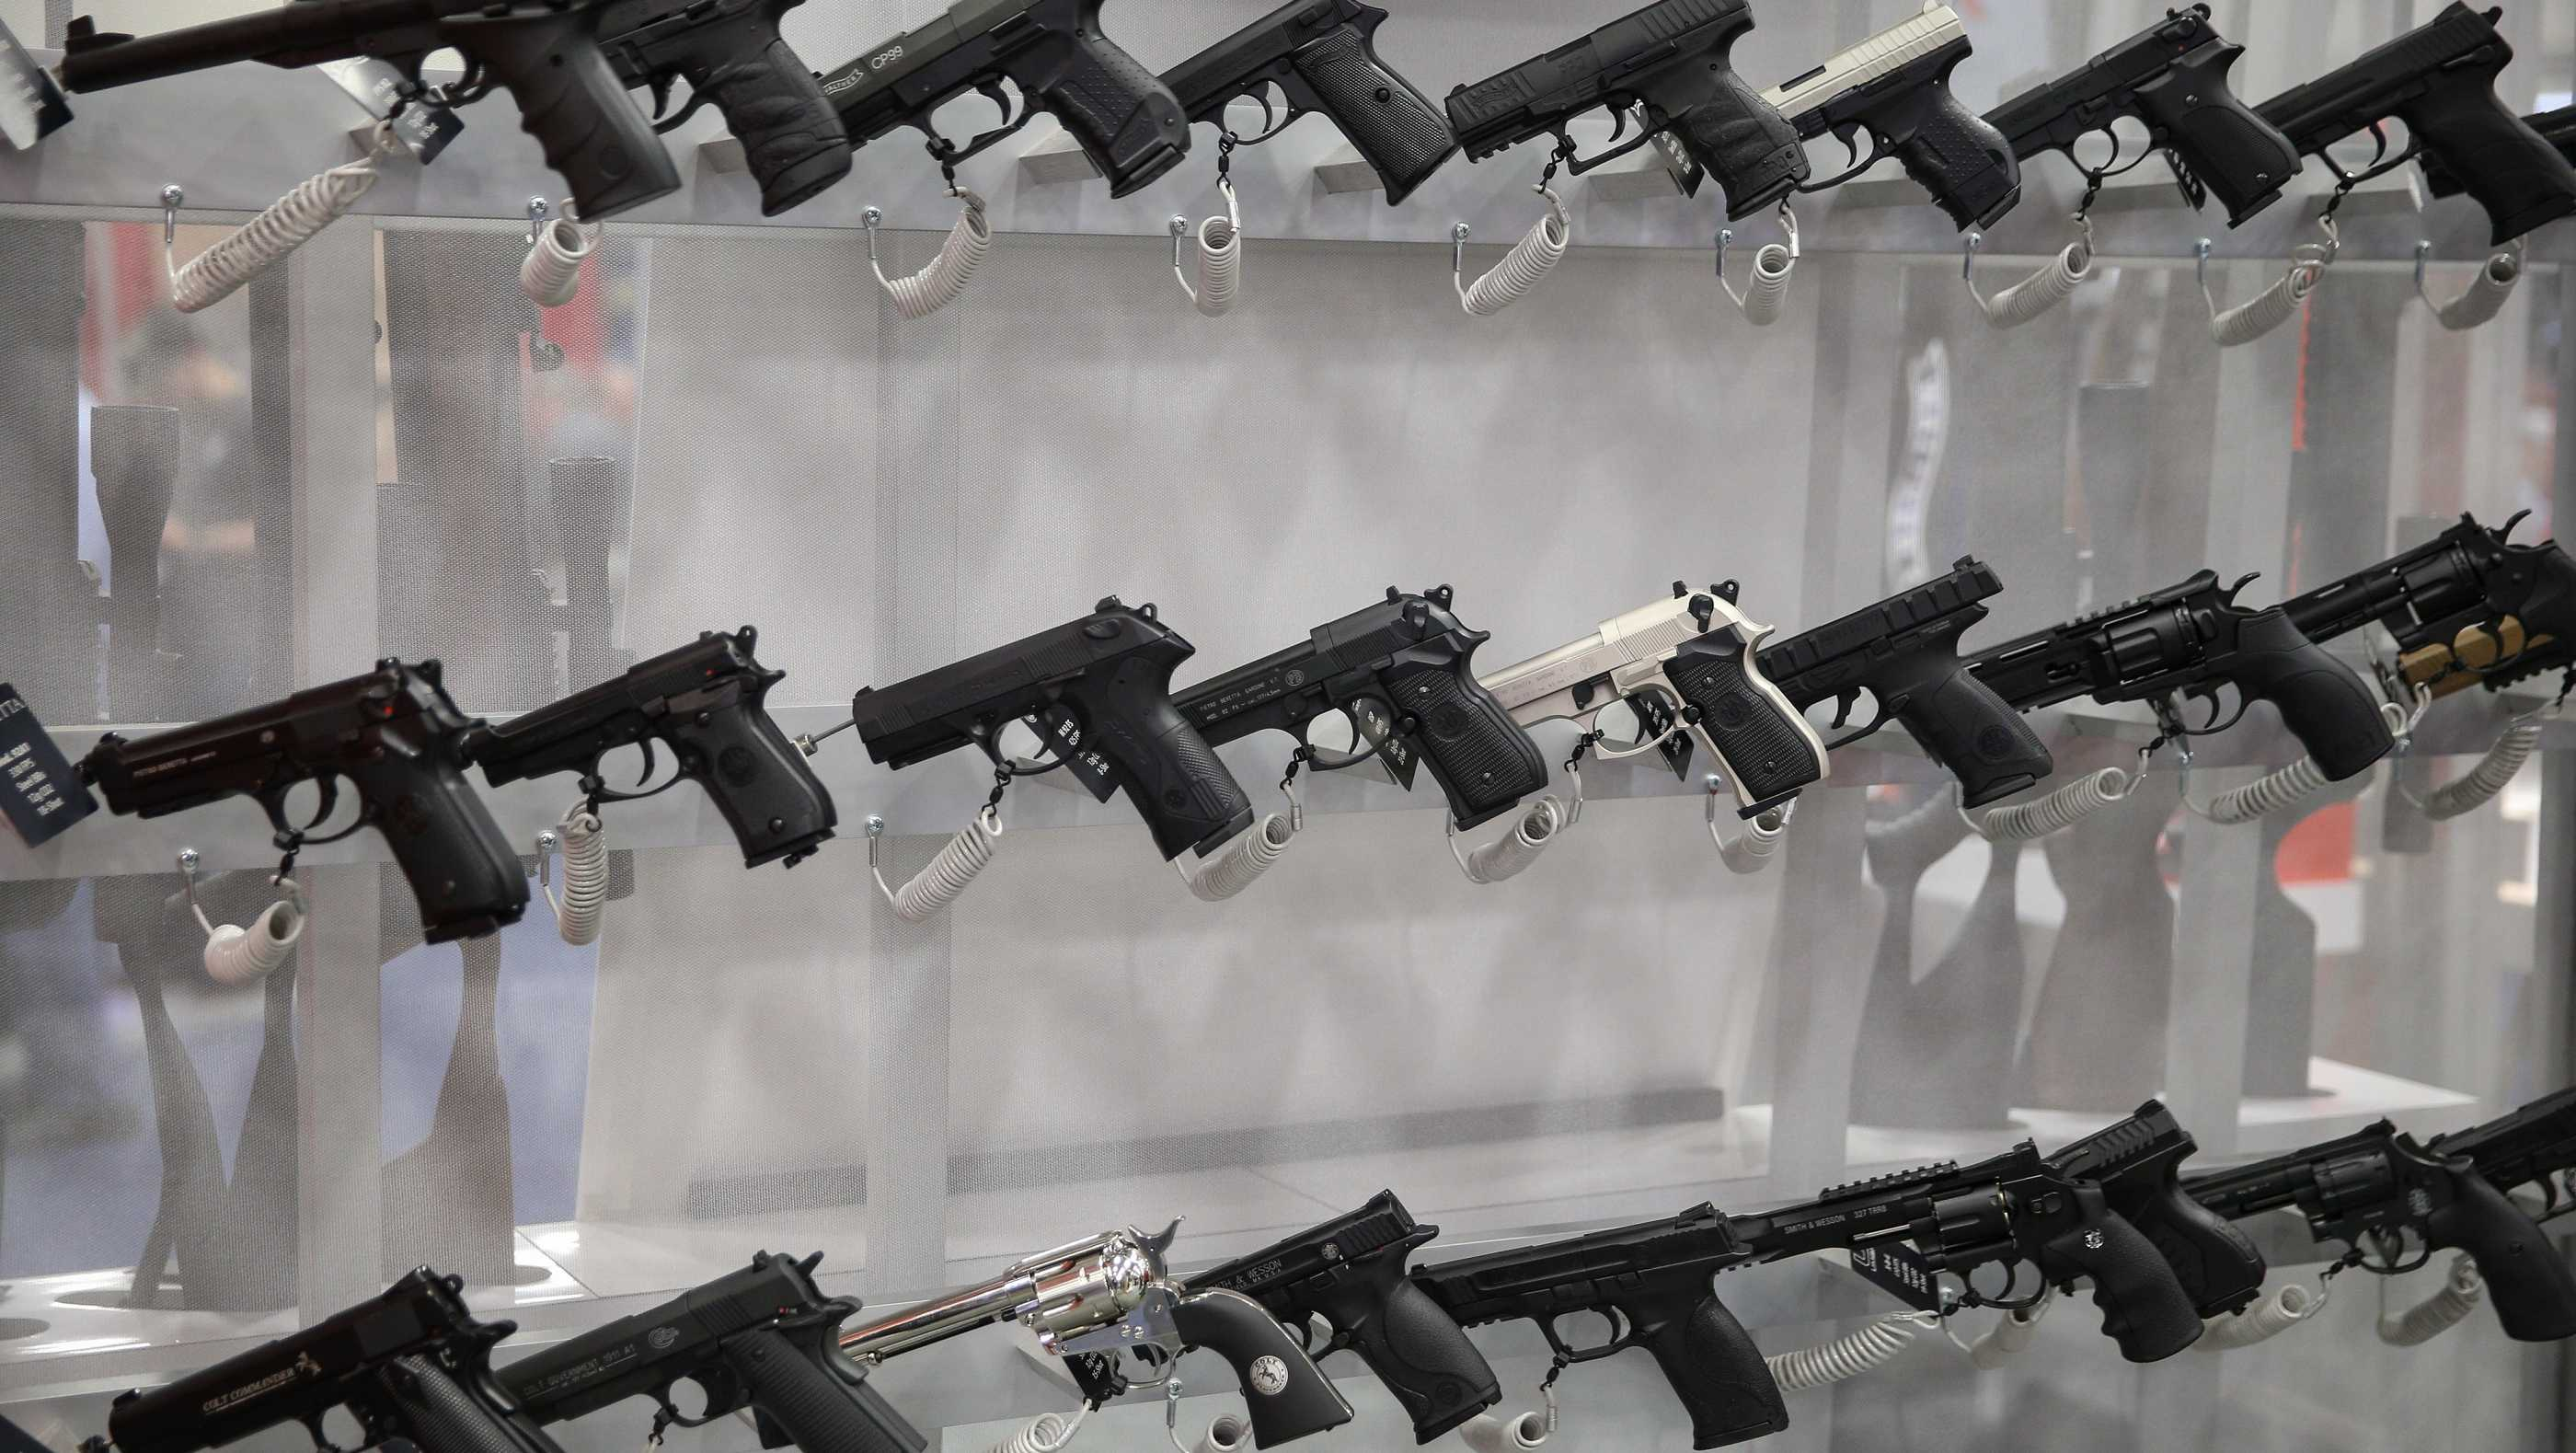 Firearms are pictured in an exhibit hall at the Kay Bailey Hutchison Convention Center during the NRA's annual convention on May 6, 2018 in Dallas, Texas.